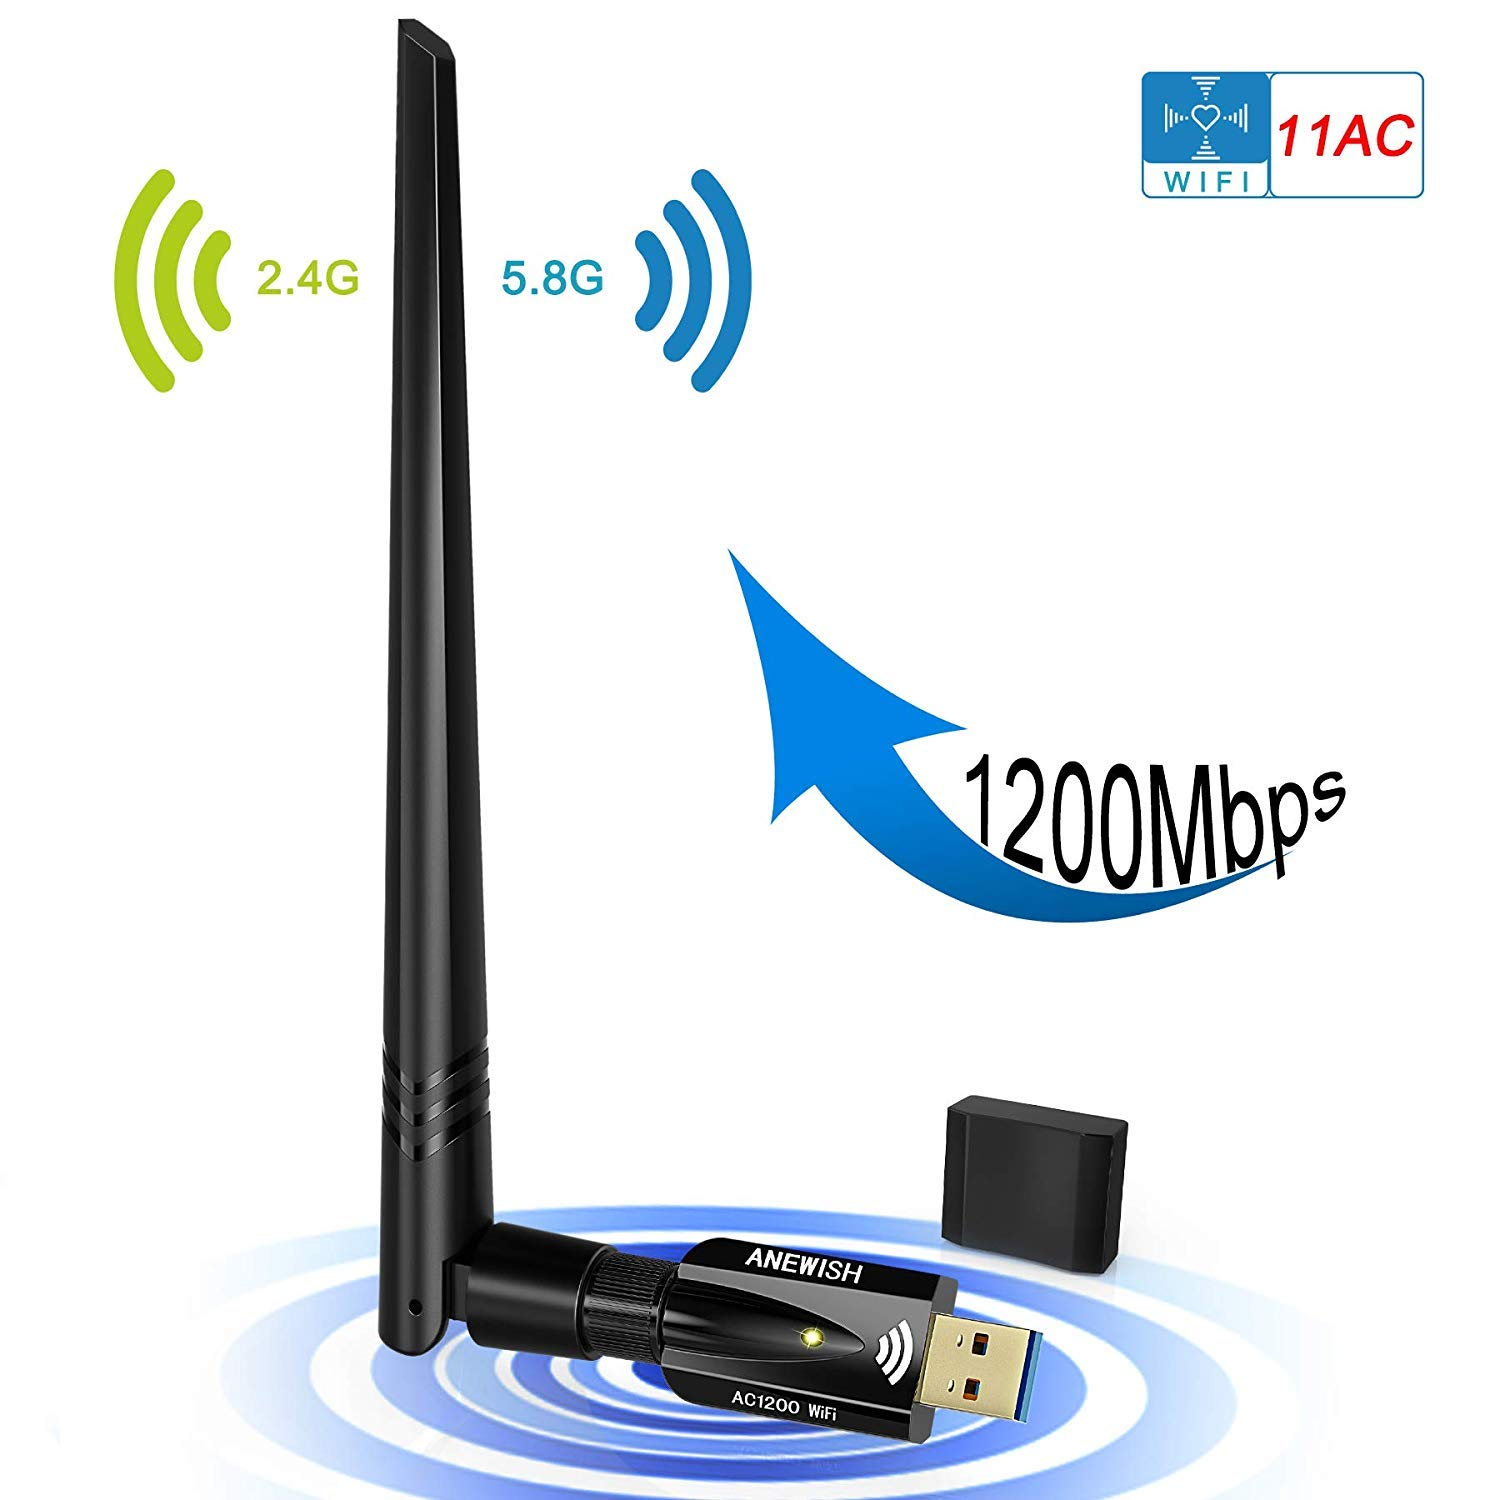 USB WiFi Adapter 1200Mbps, ANEWISH Wireless Adapter USB3.0 Dual Band 11ac(2.4GHz/300Mbps 5GHz/867Mbps) Network LAN Card Dongle for PC Desktop Laptop, ...